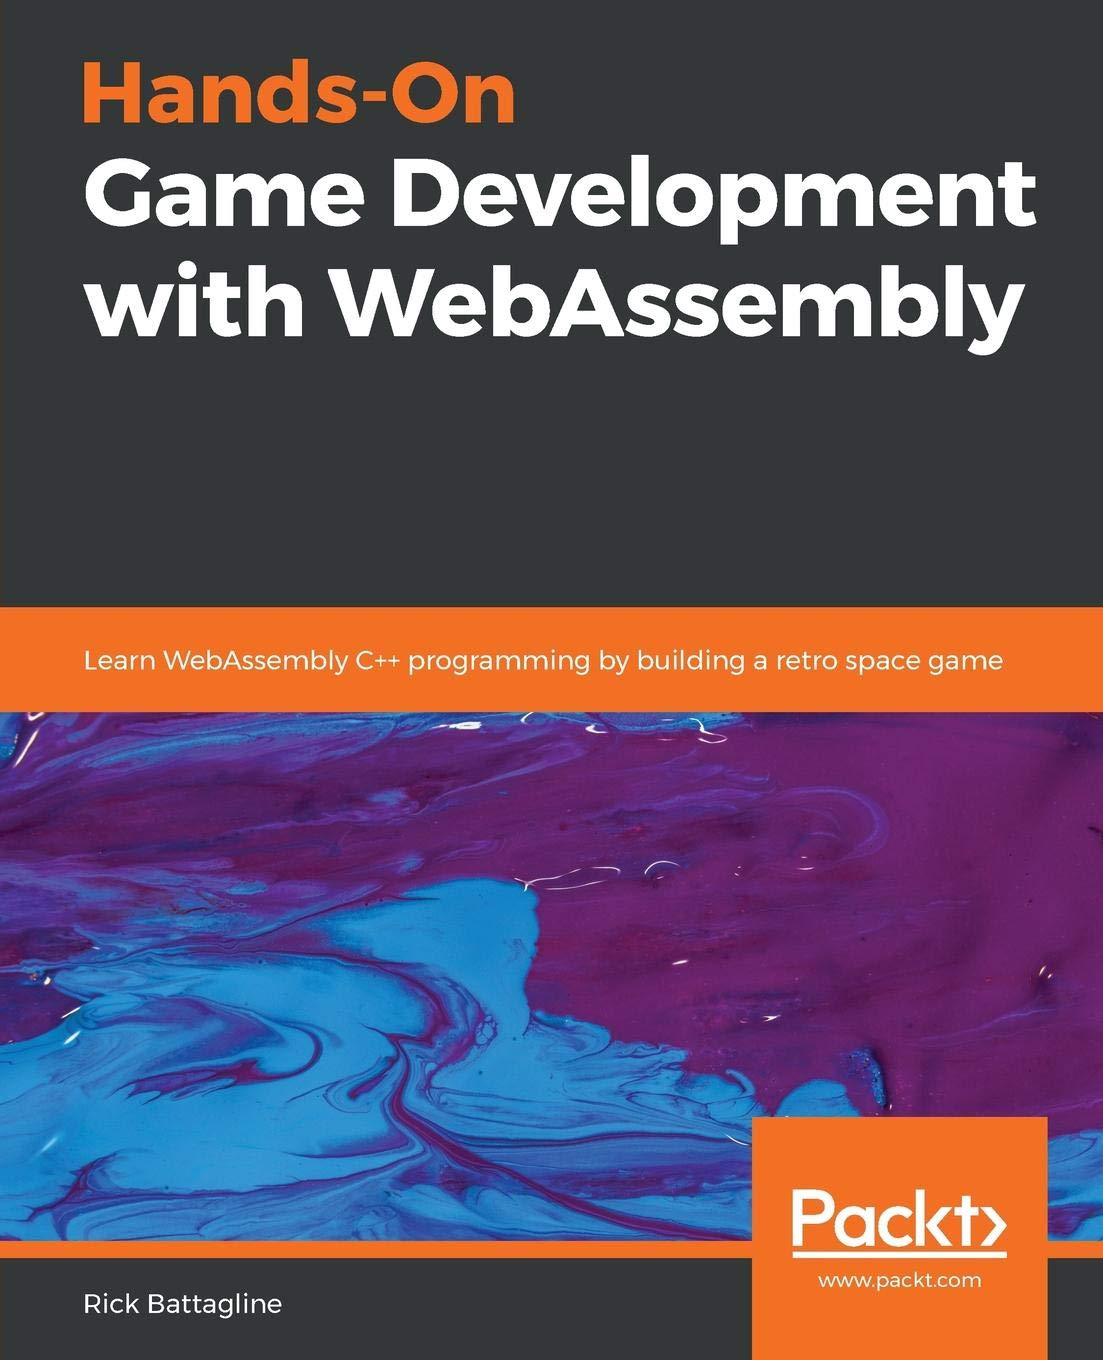 Hands-On Game Development with WebAssembly: Learn